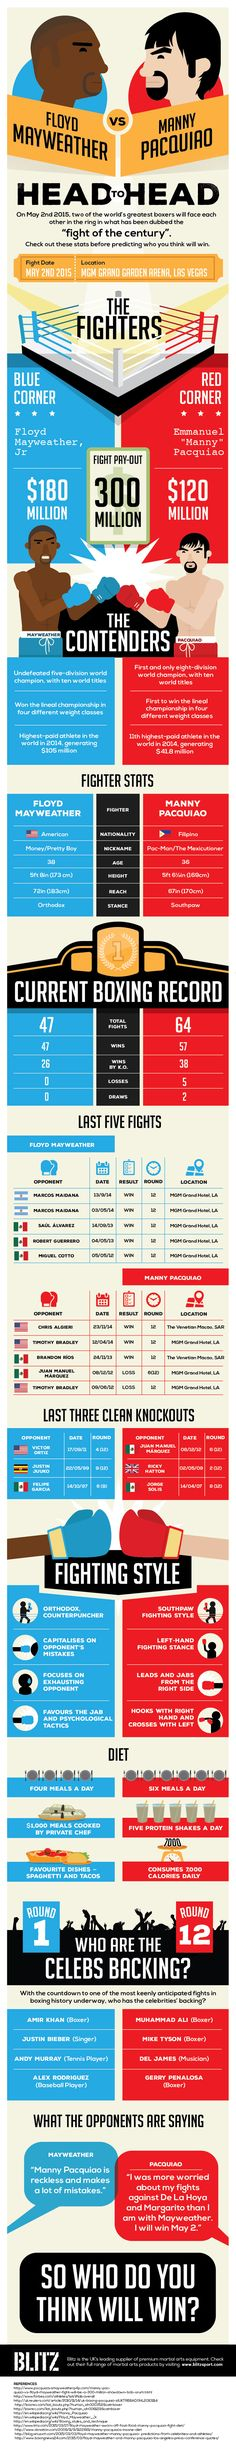 Floyd Mayweather vs Manny Pacquiao [Infographic]